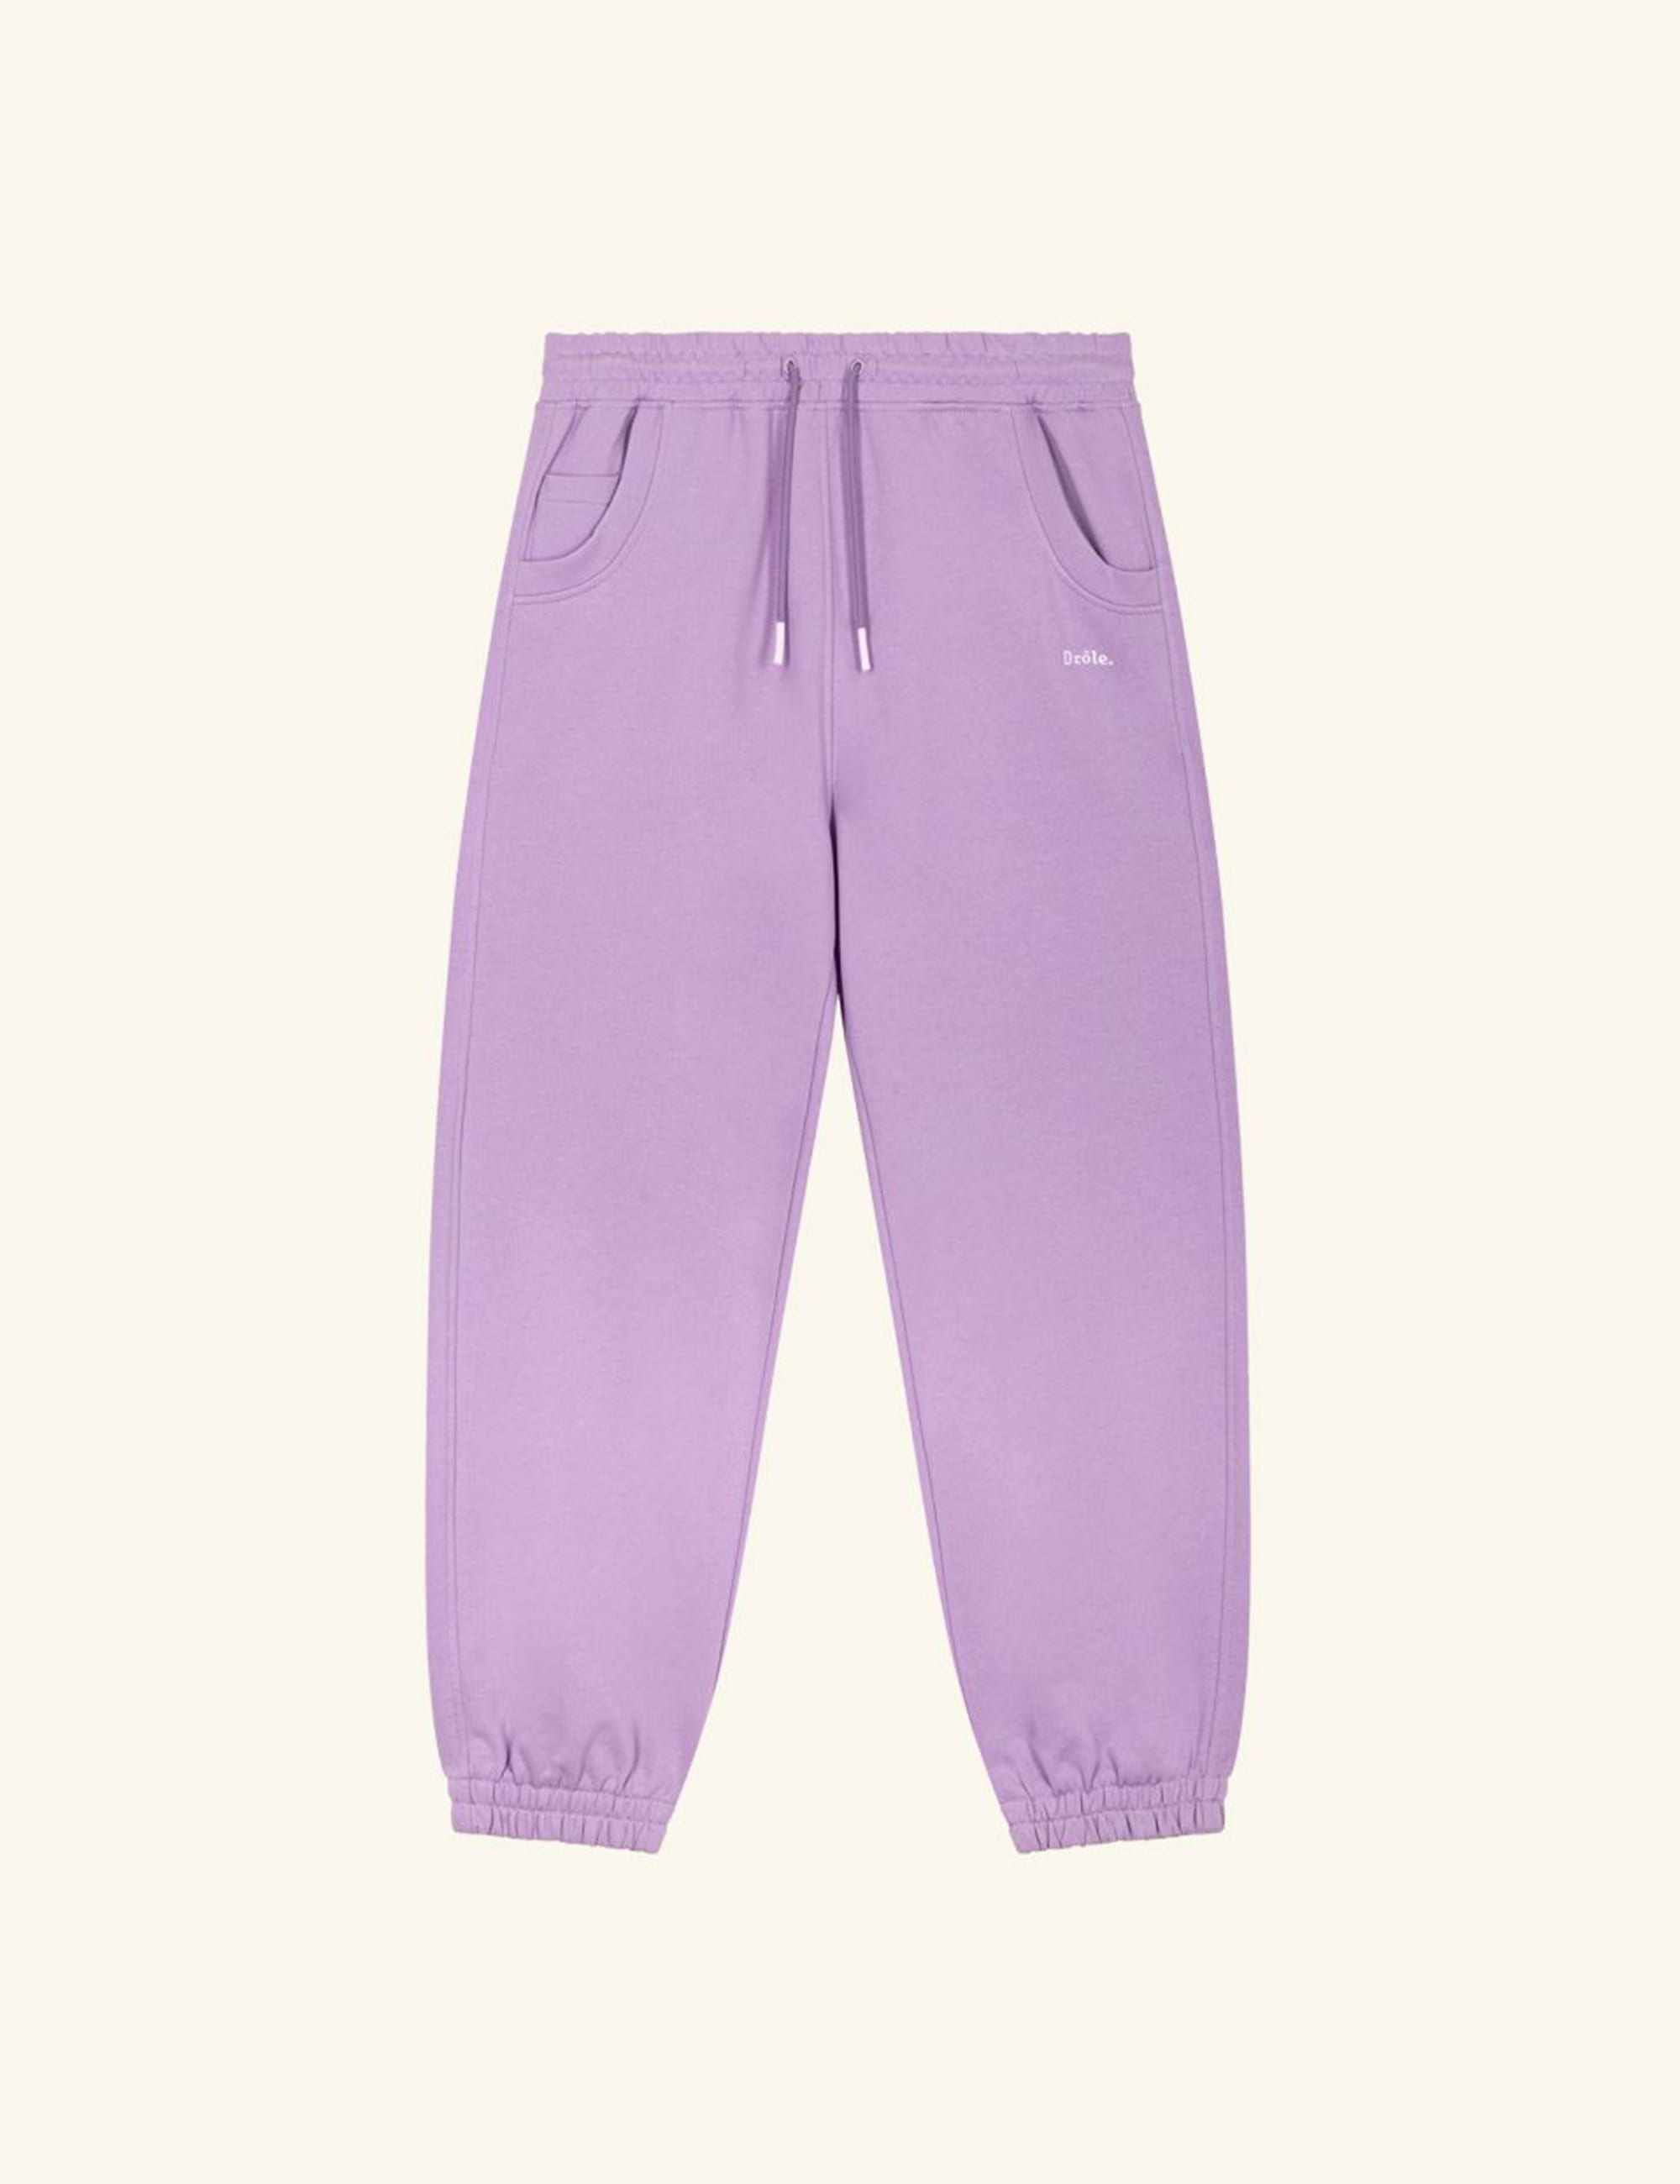 DROLE SWEATPANTS_PURPLE